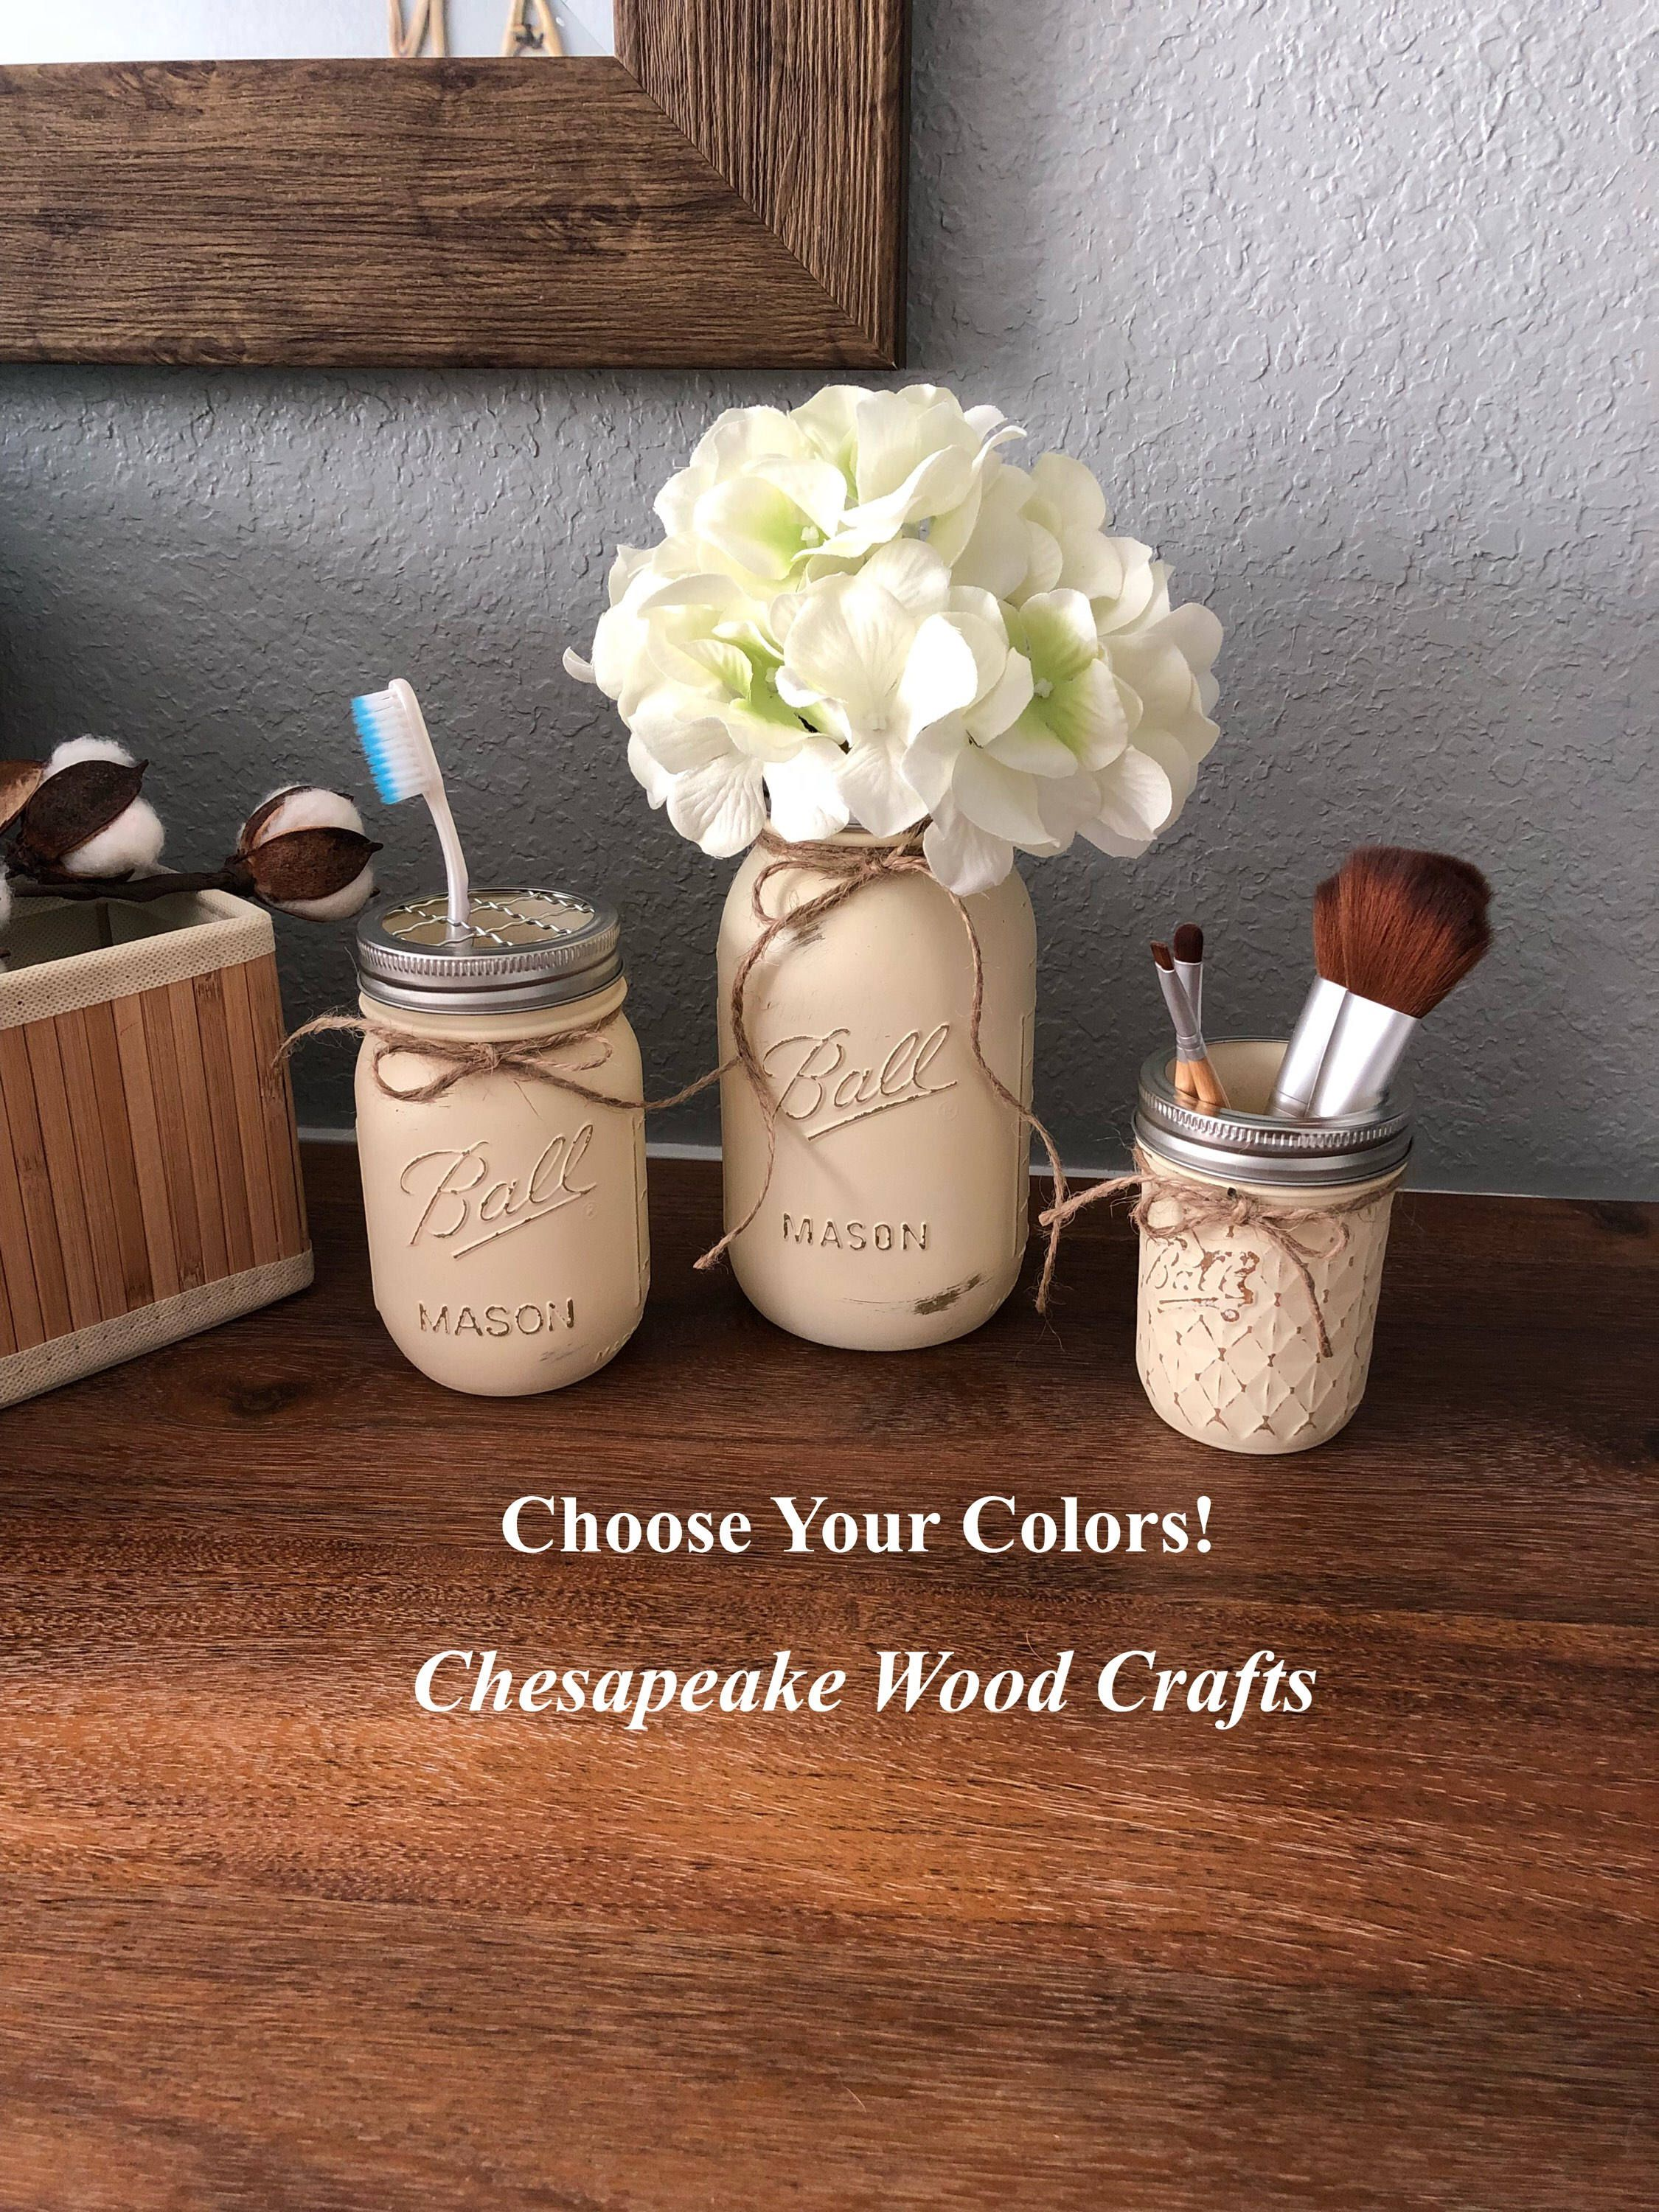 3 Piece Mason Jar Bathroom Set Farmhouse Decor Painted JarsHome And LivingToothbrush HolderRustic